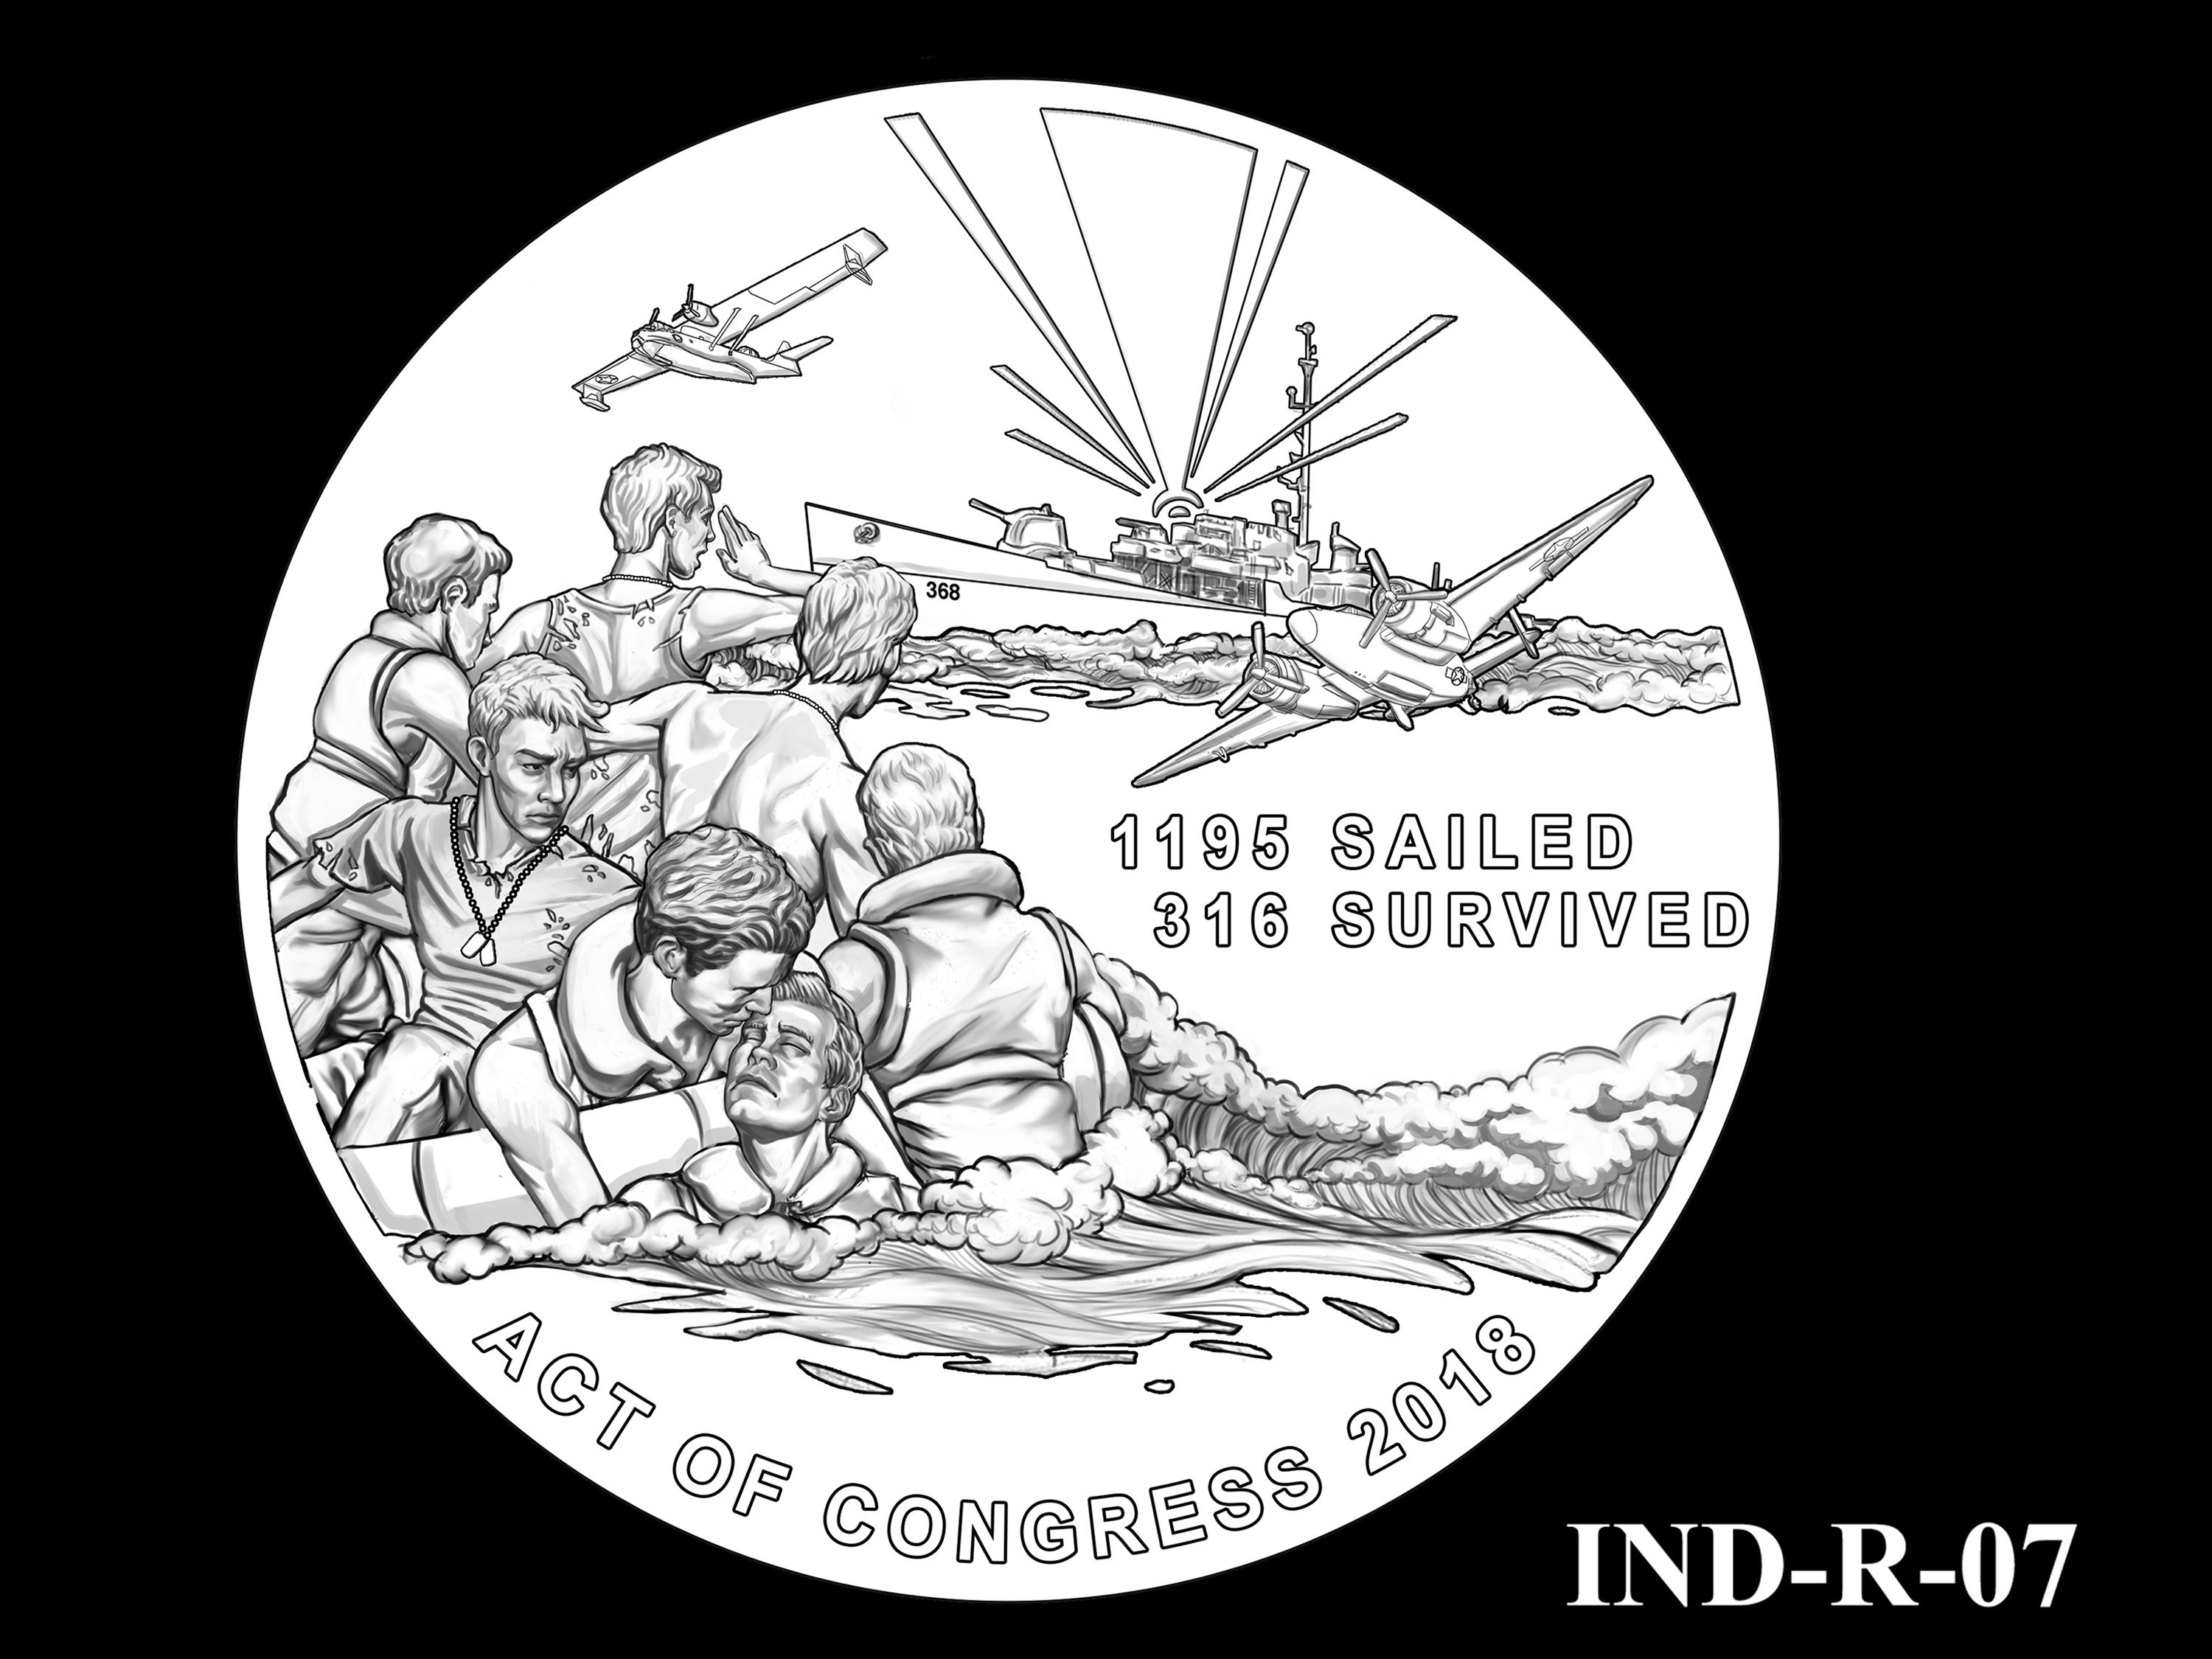 IND-R-07 - USS Indianapolis Congressional Gold Medal - Reverse